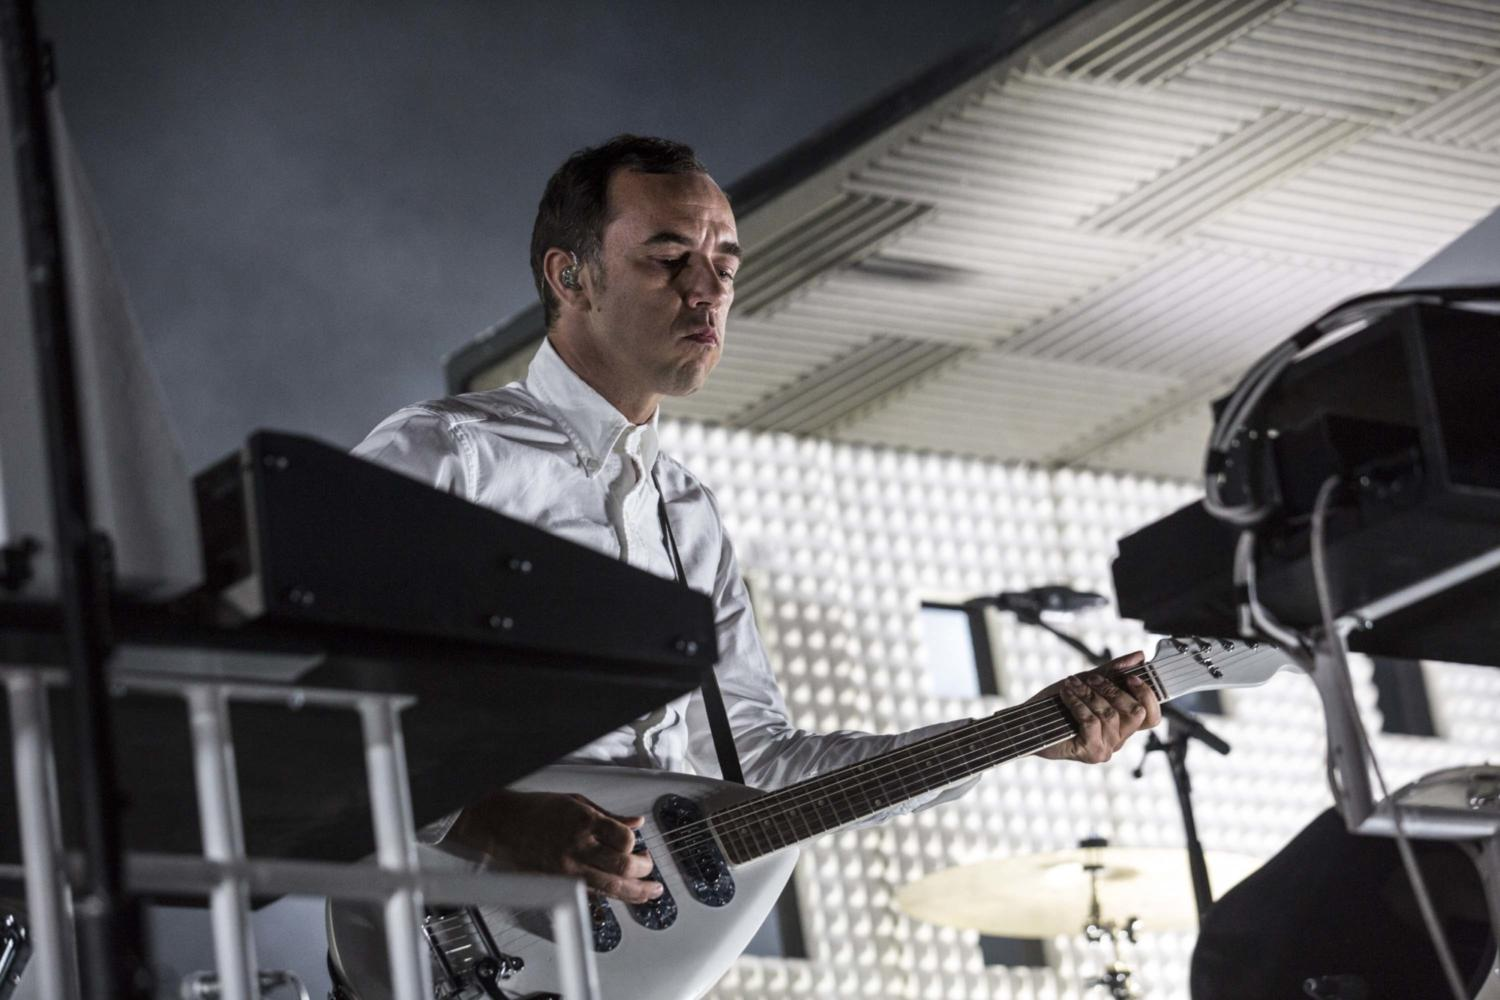 Soulwax, Yaeji and more to play All Points East